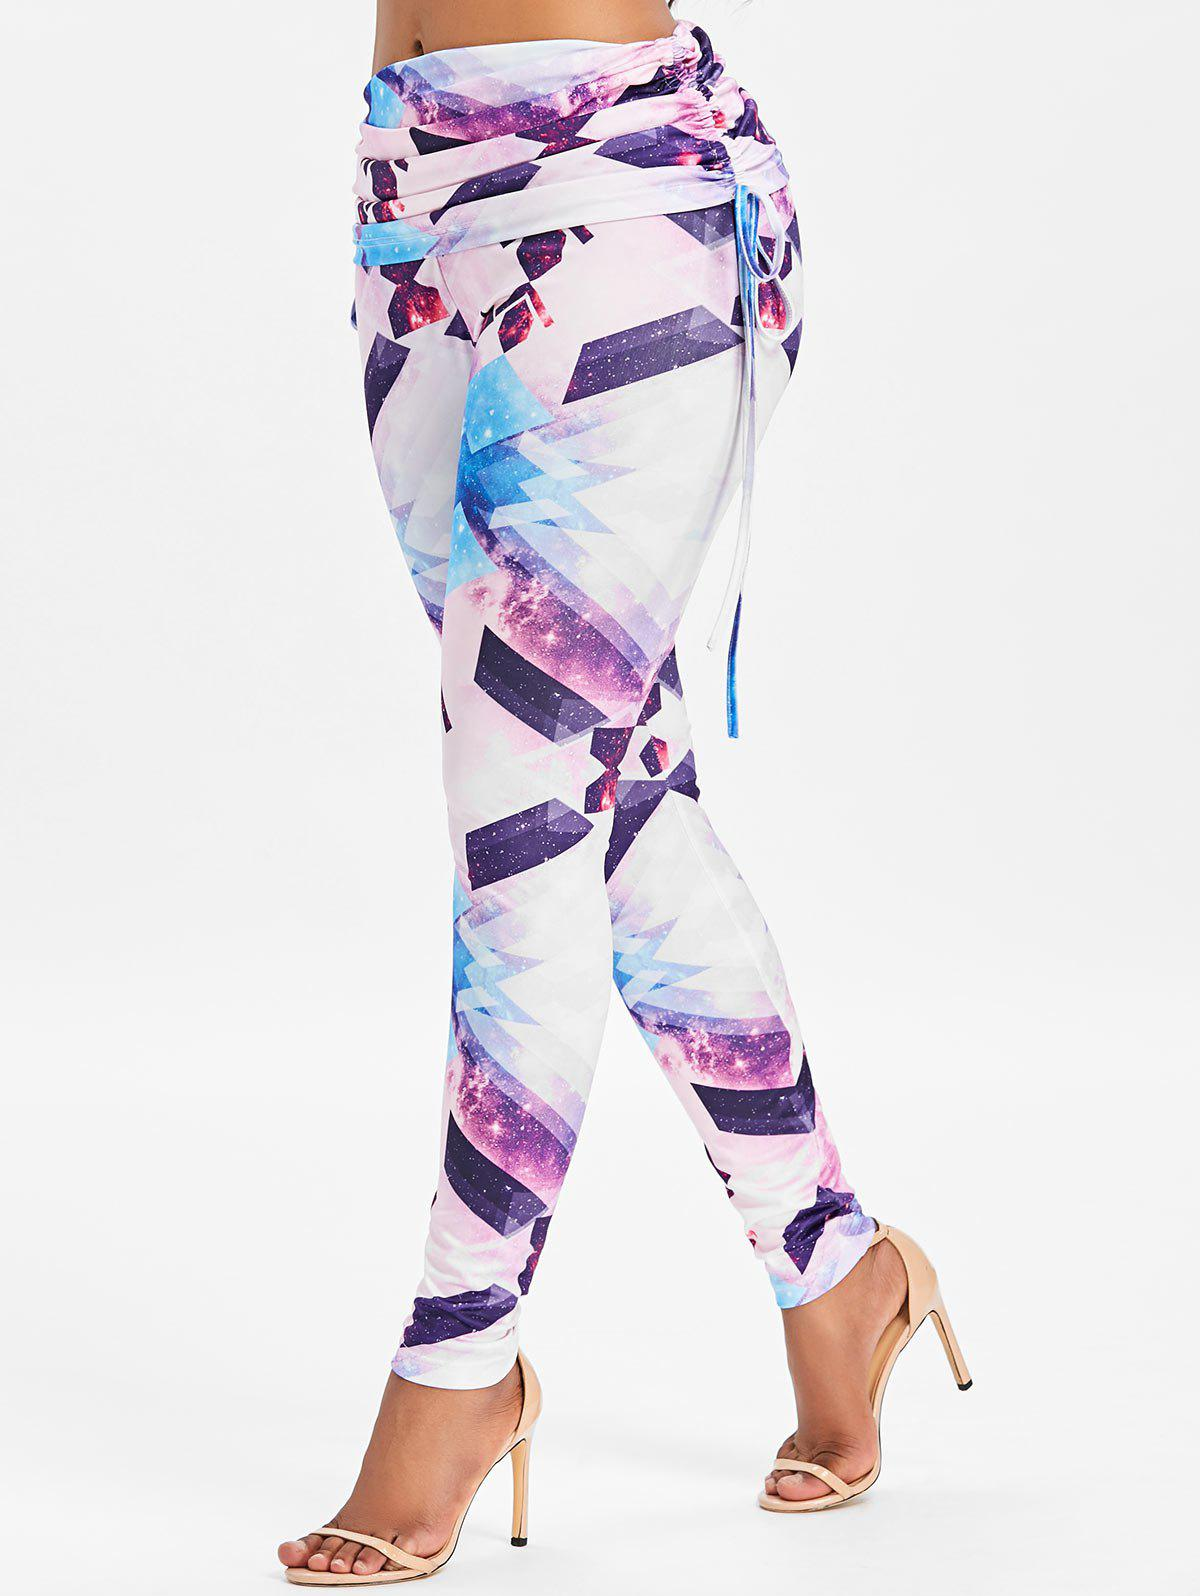 Geometry Printed High Waist Workout Leggings - WHITE M